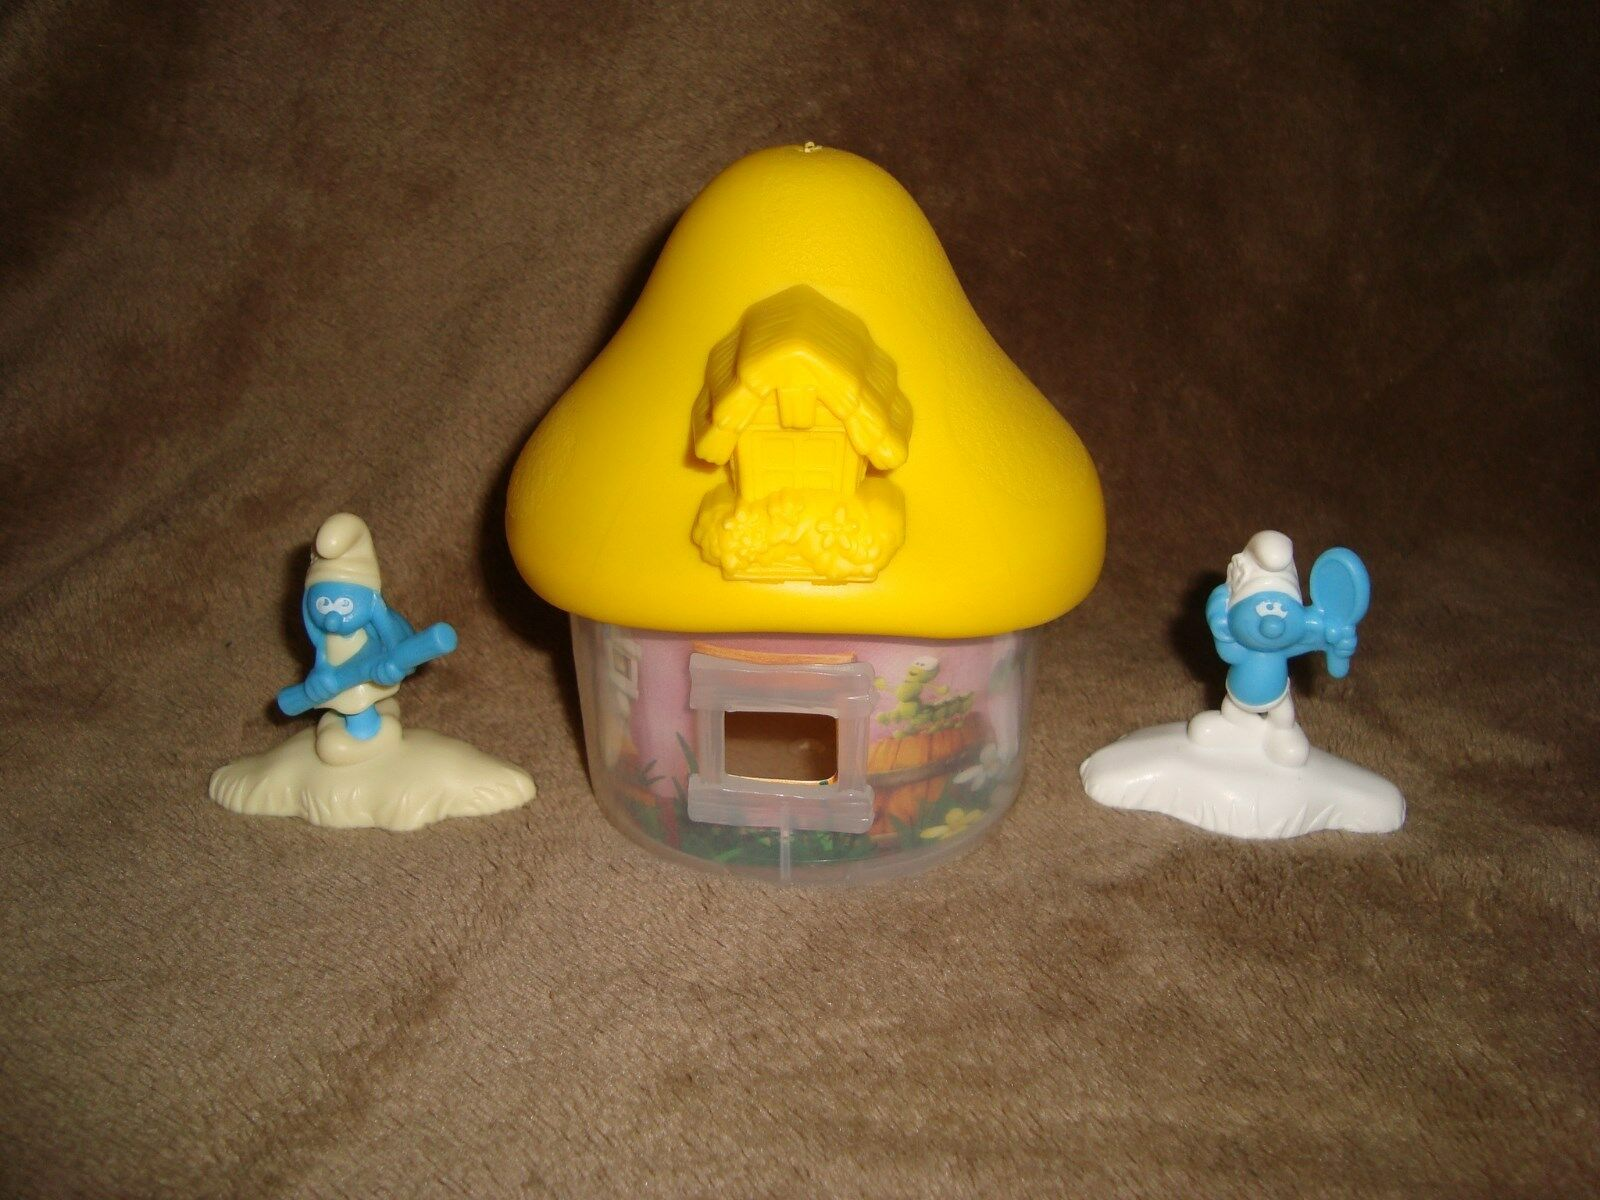 2017 MCDONALDS Happy Meal Toy Smurfs The Lost Village ...